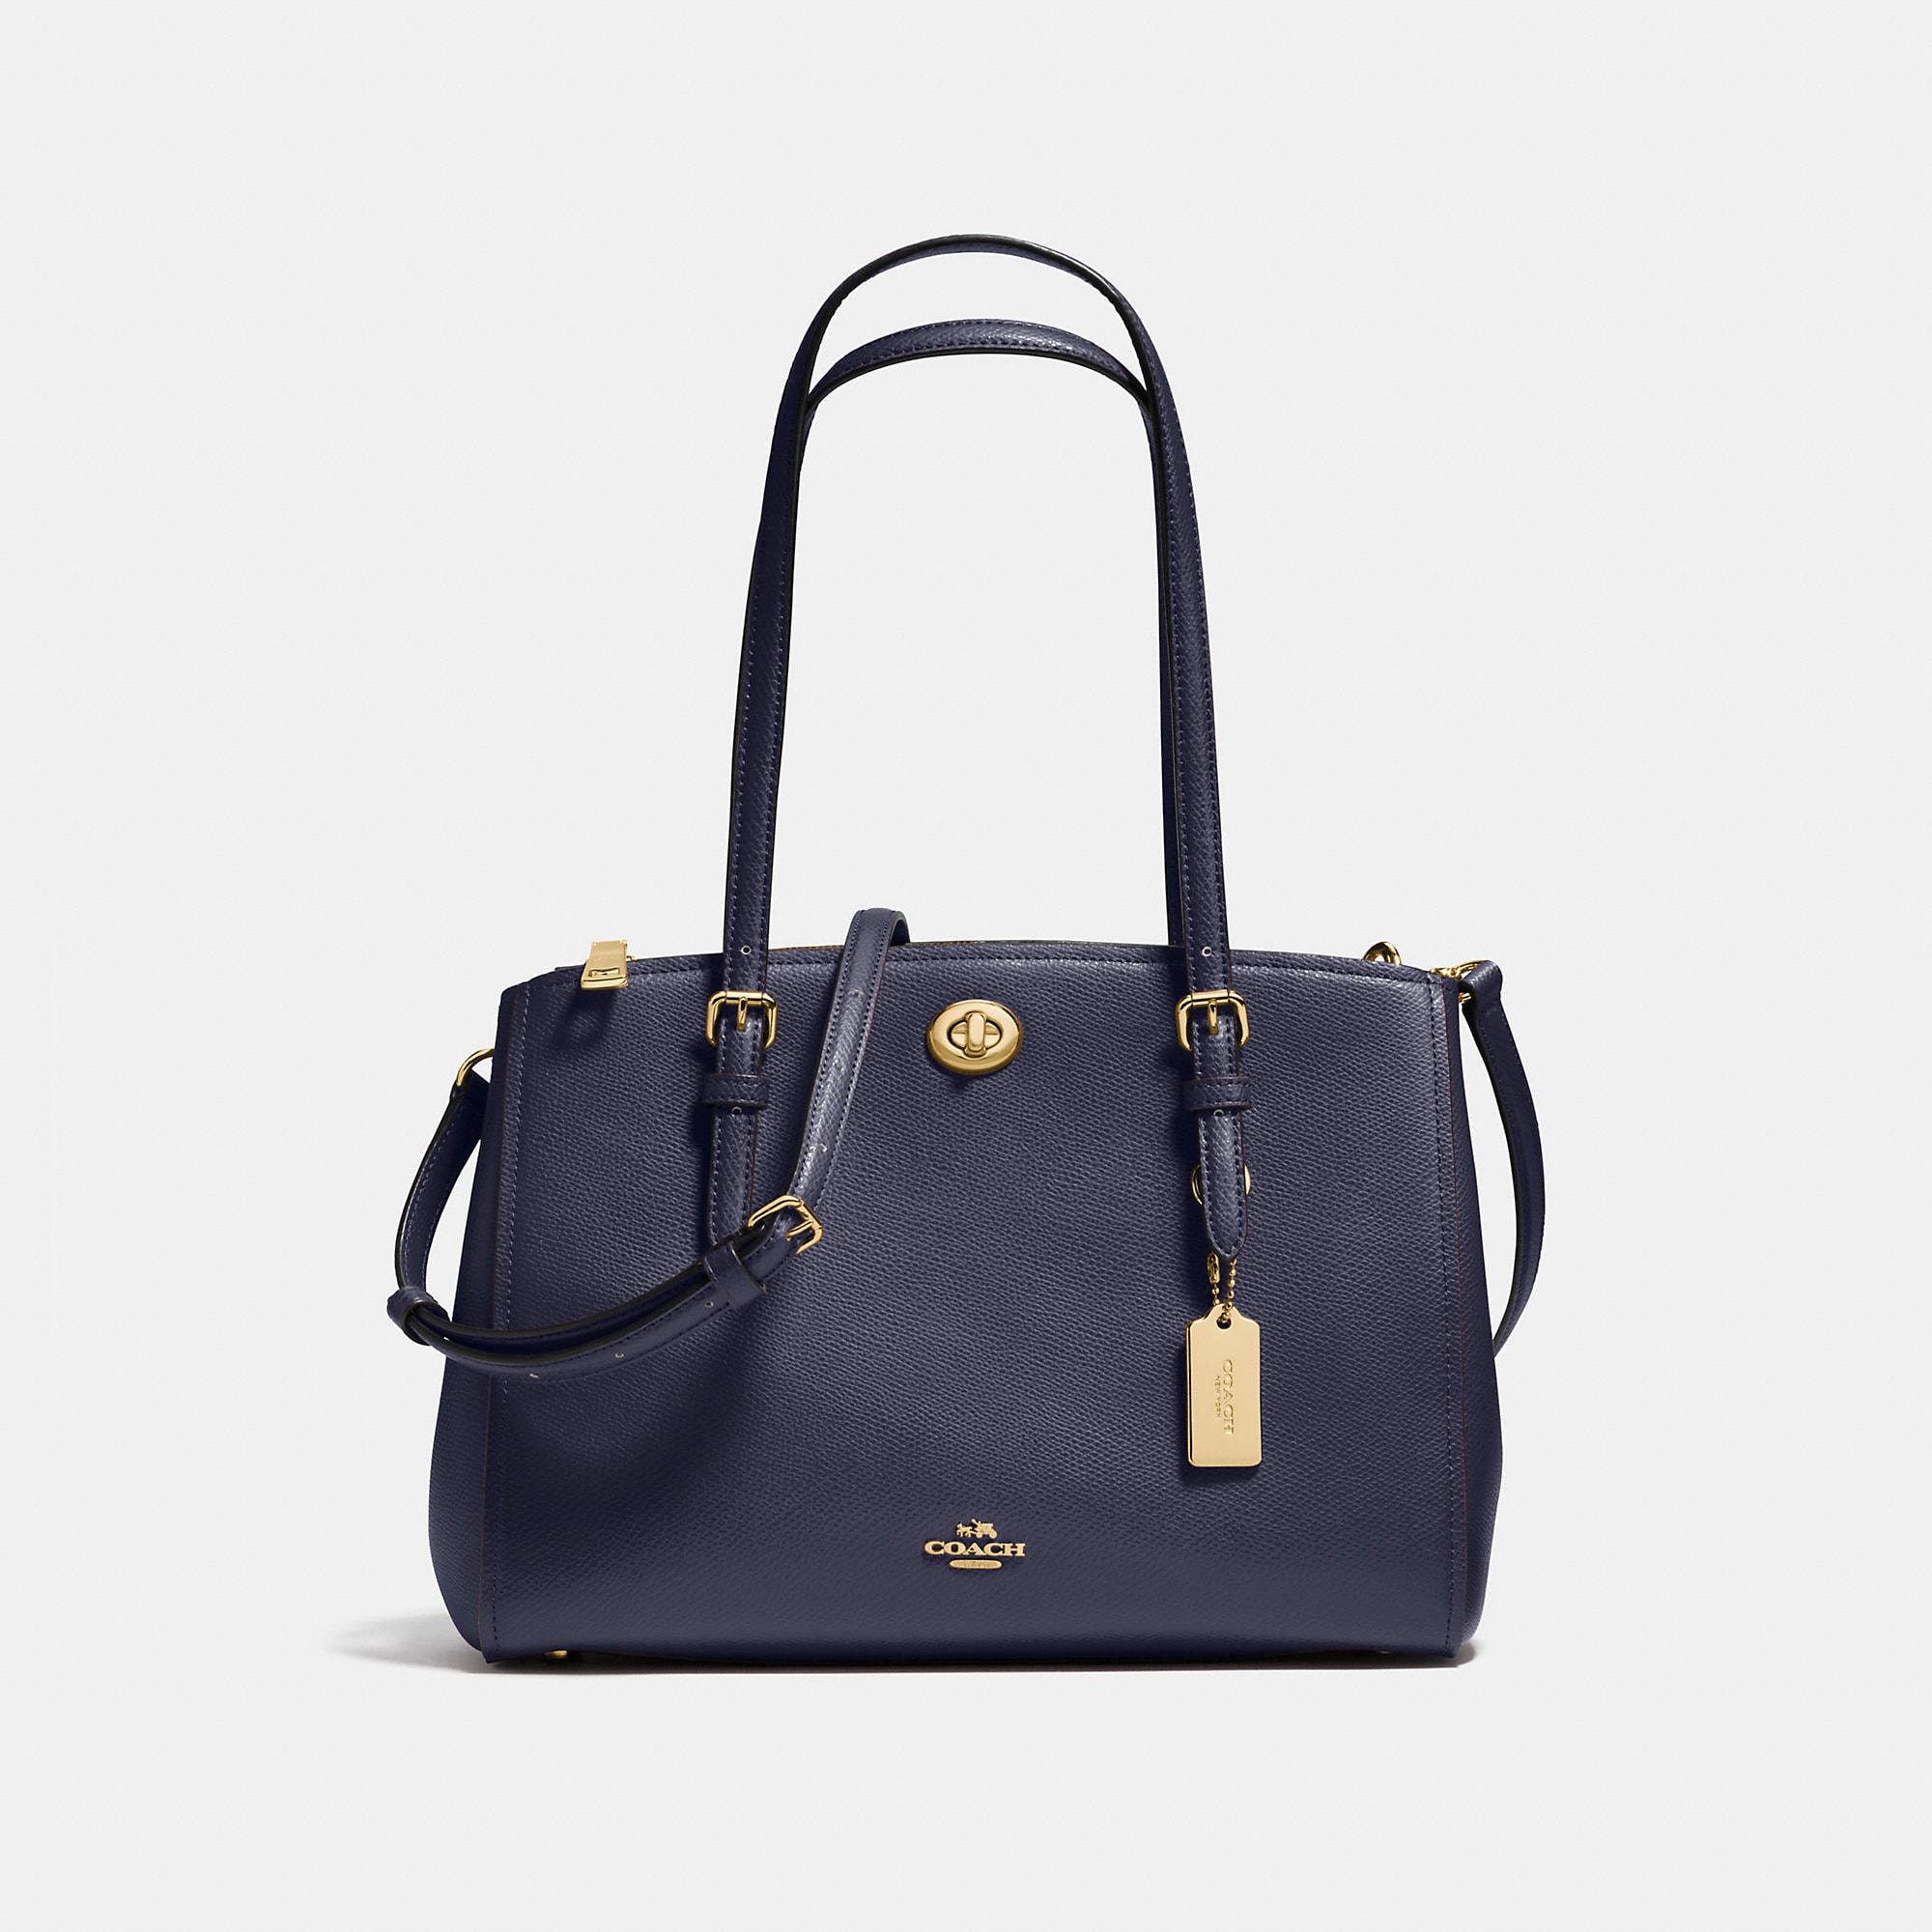 Coach Turnlock Carryall 29 In Crossgrain Leather